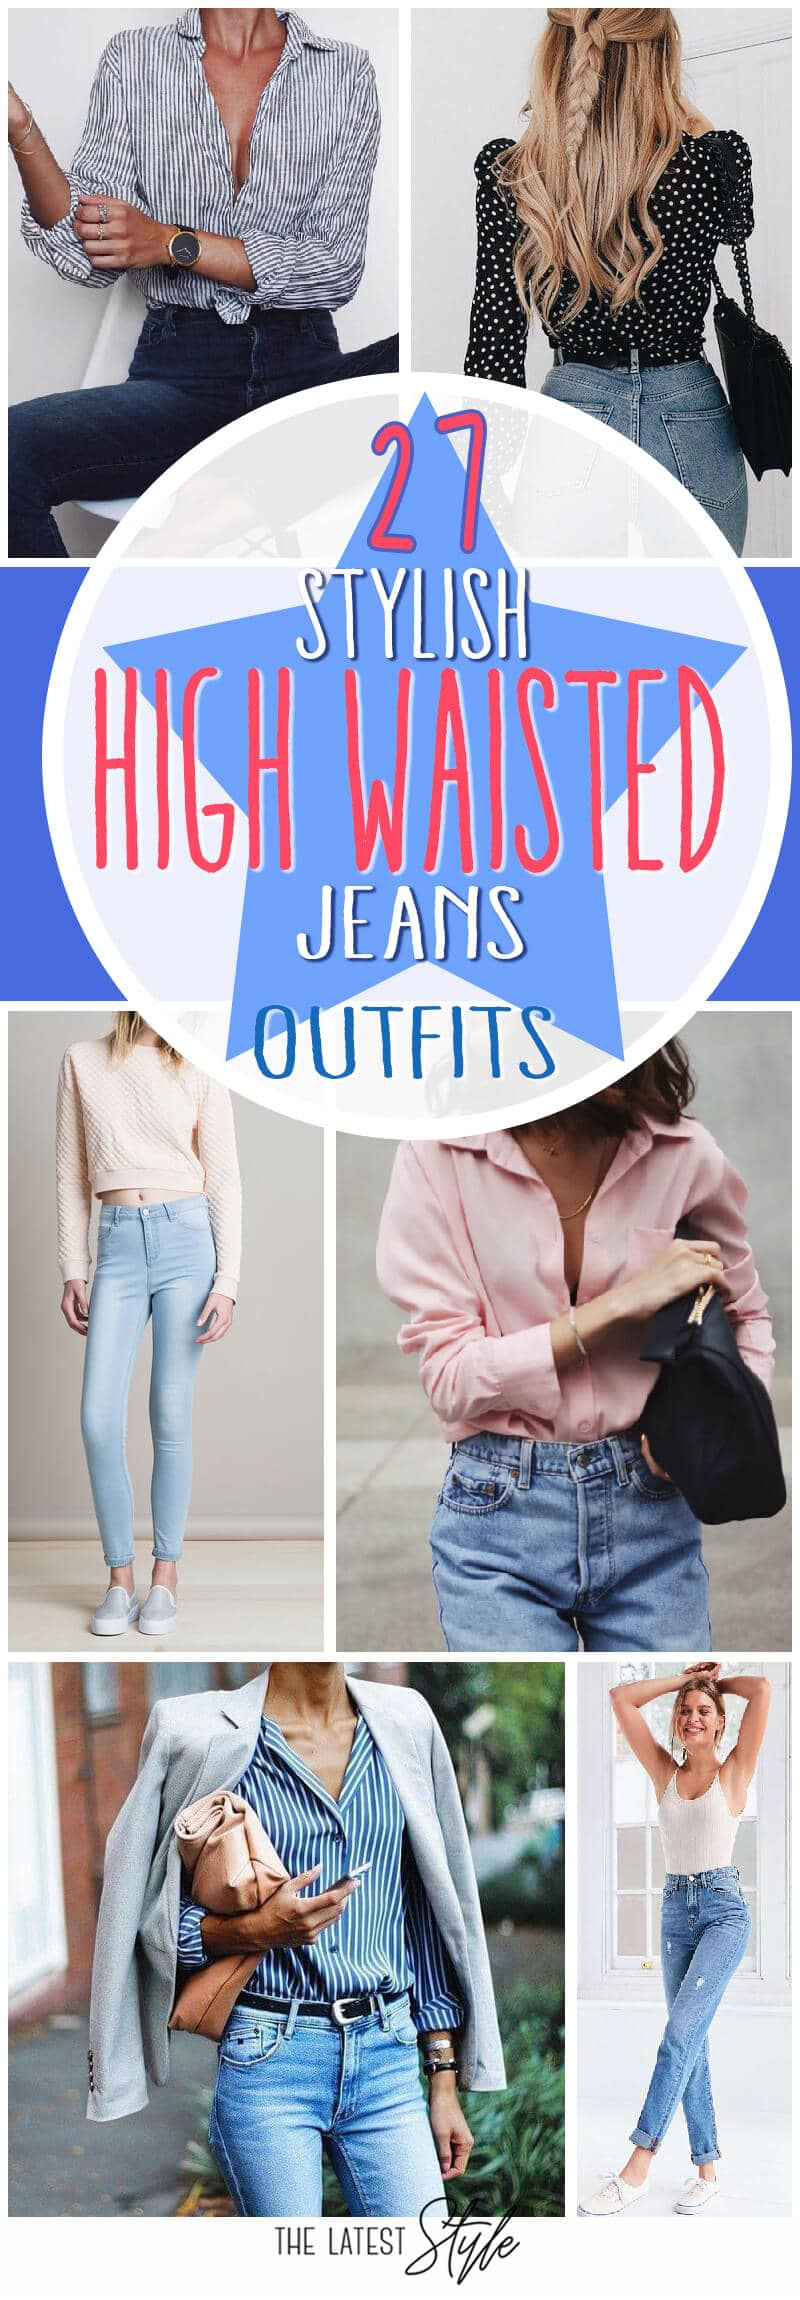 27 of the Most Stylish High Waisted Jeans Outfits